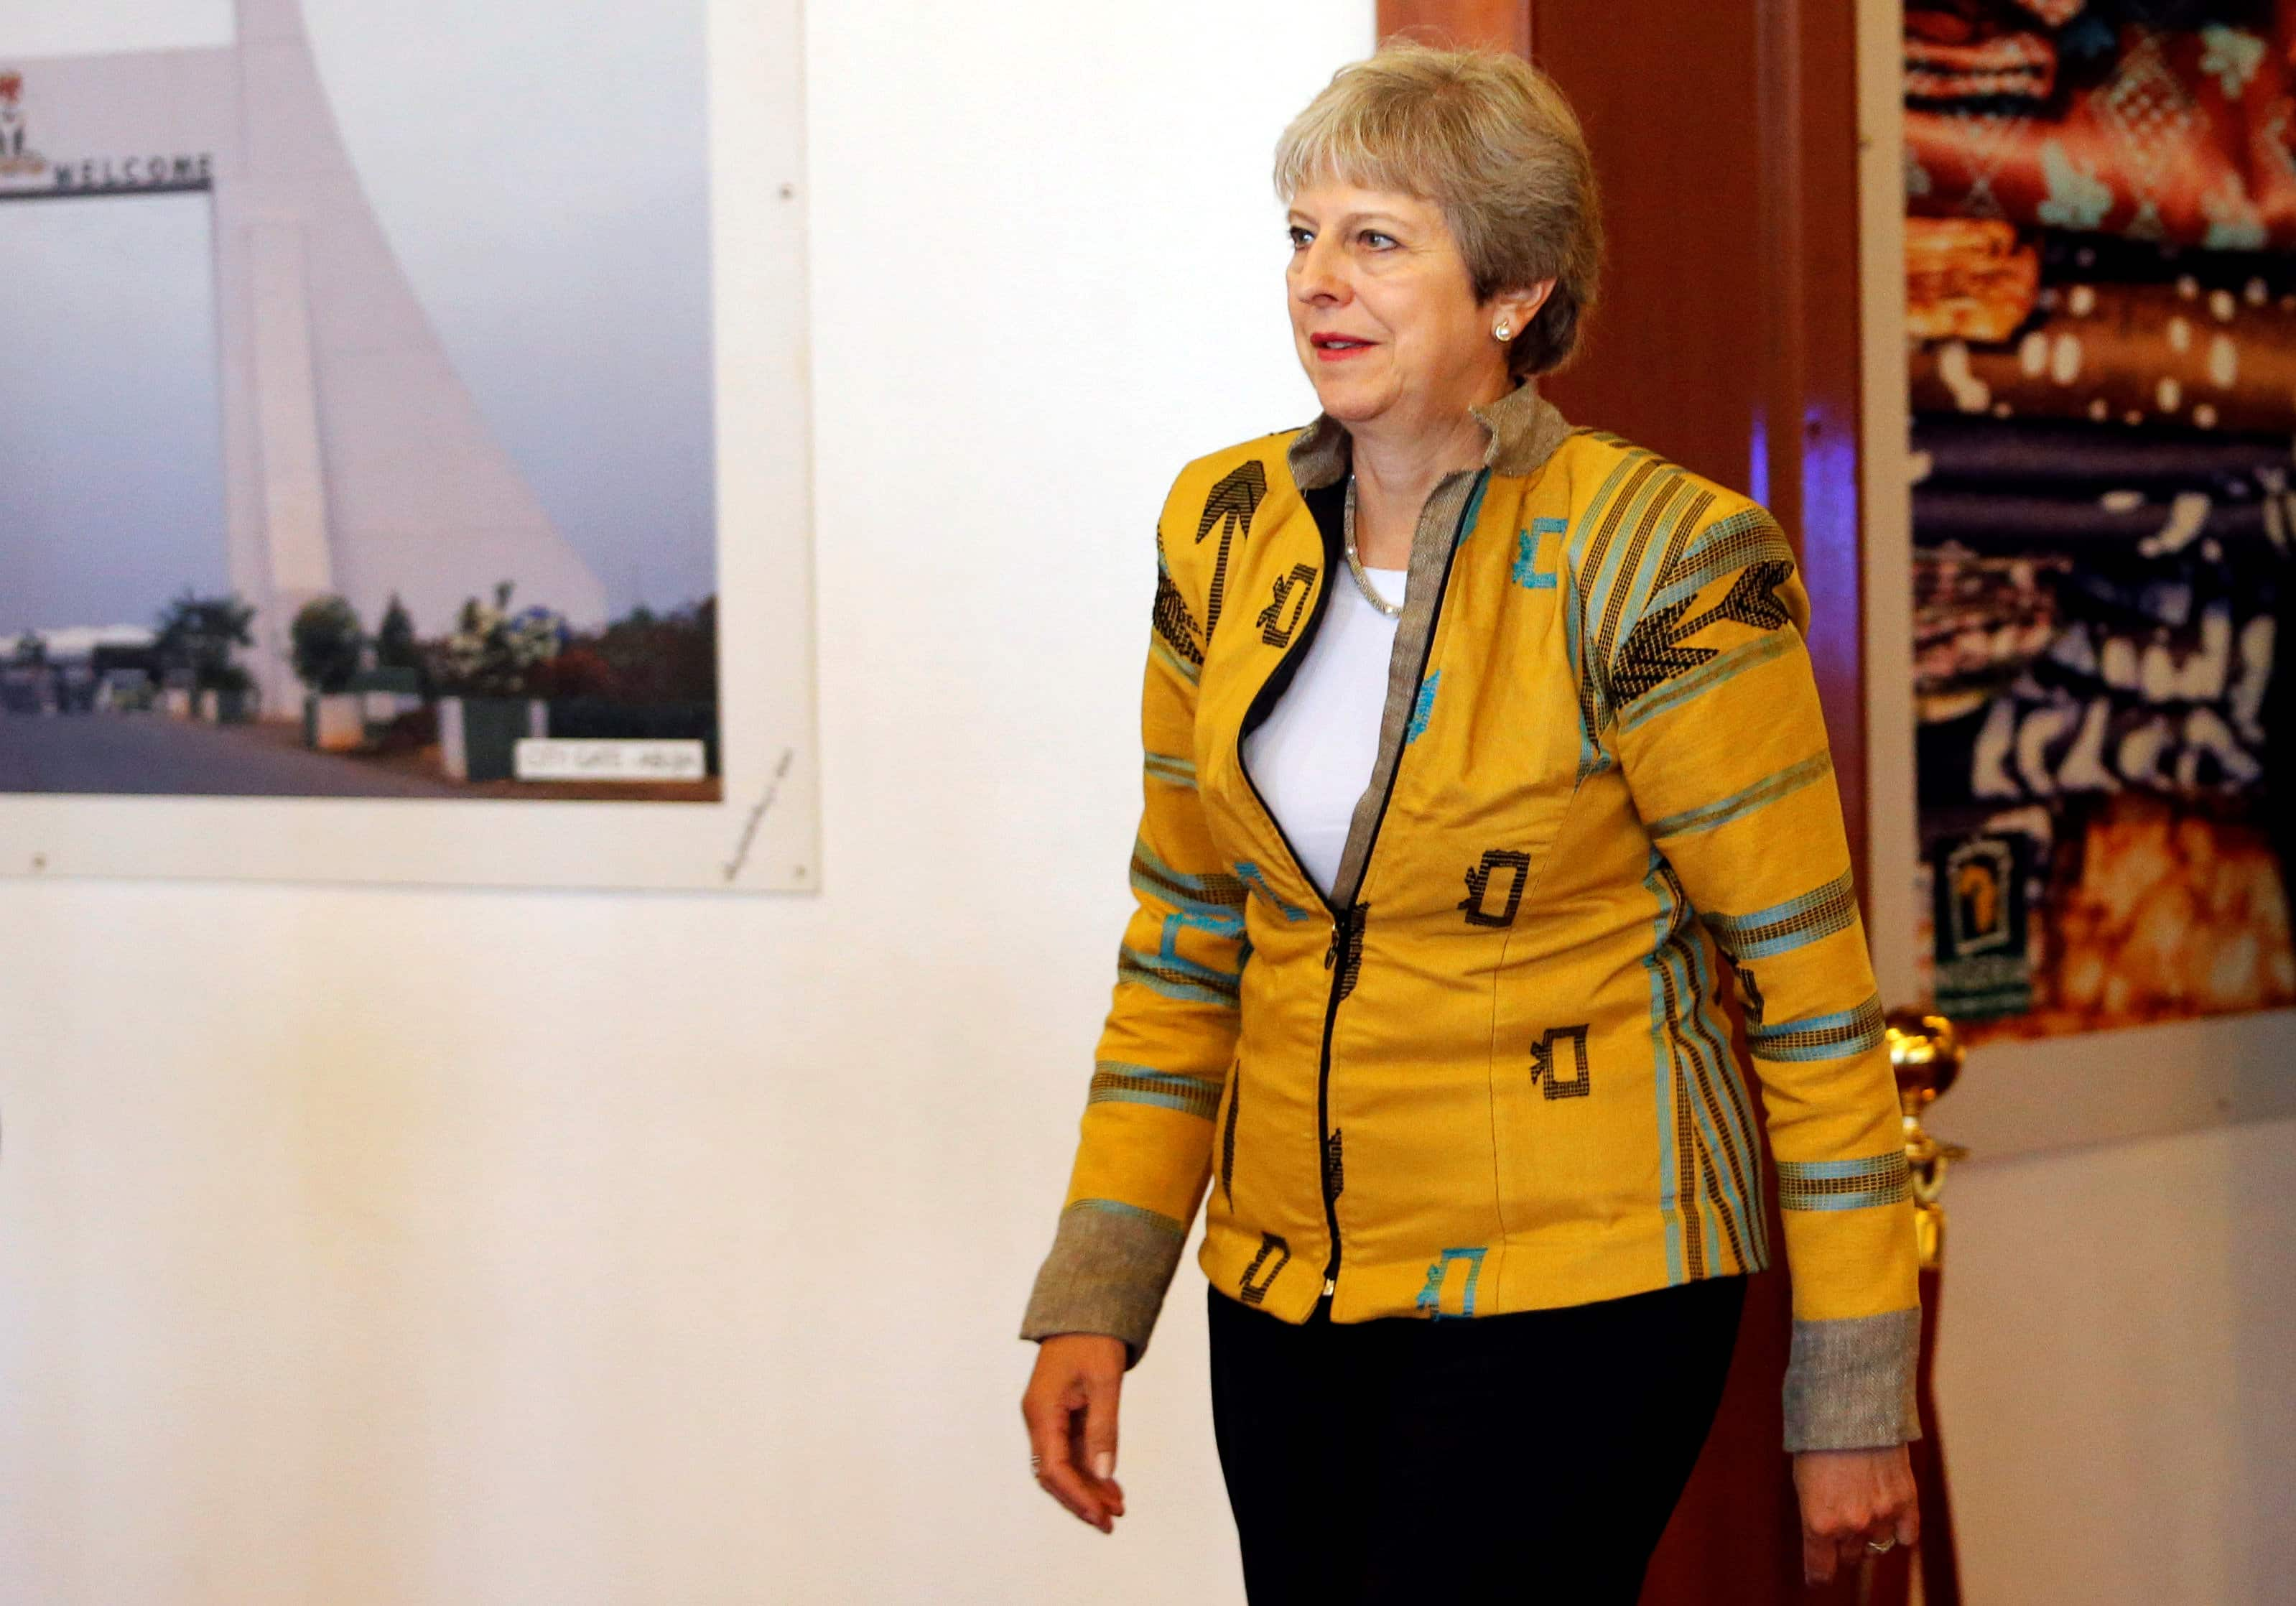 About 50 Conservative lawmakers discuss ousting UK Prime Minister Theresa May: BBC